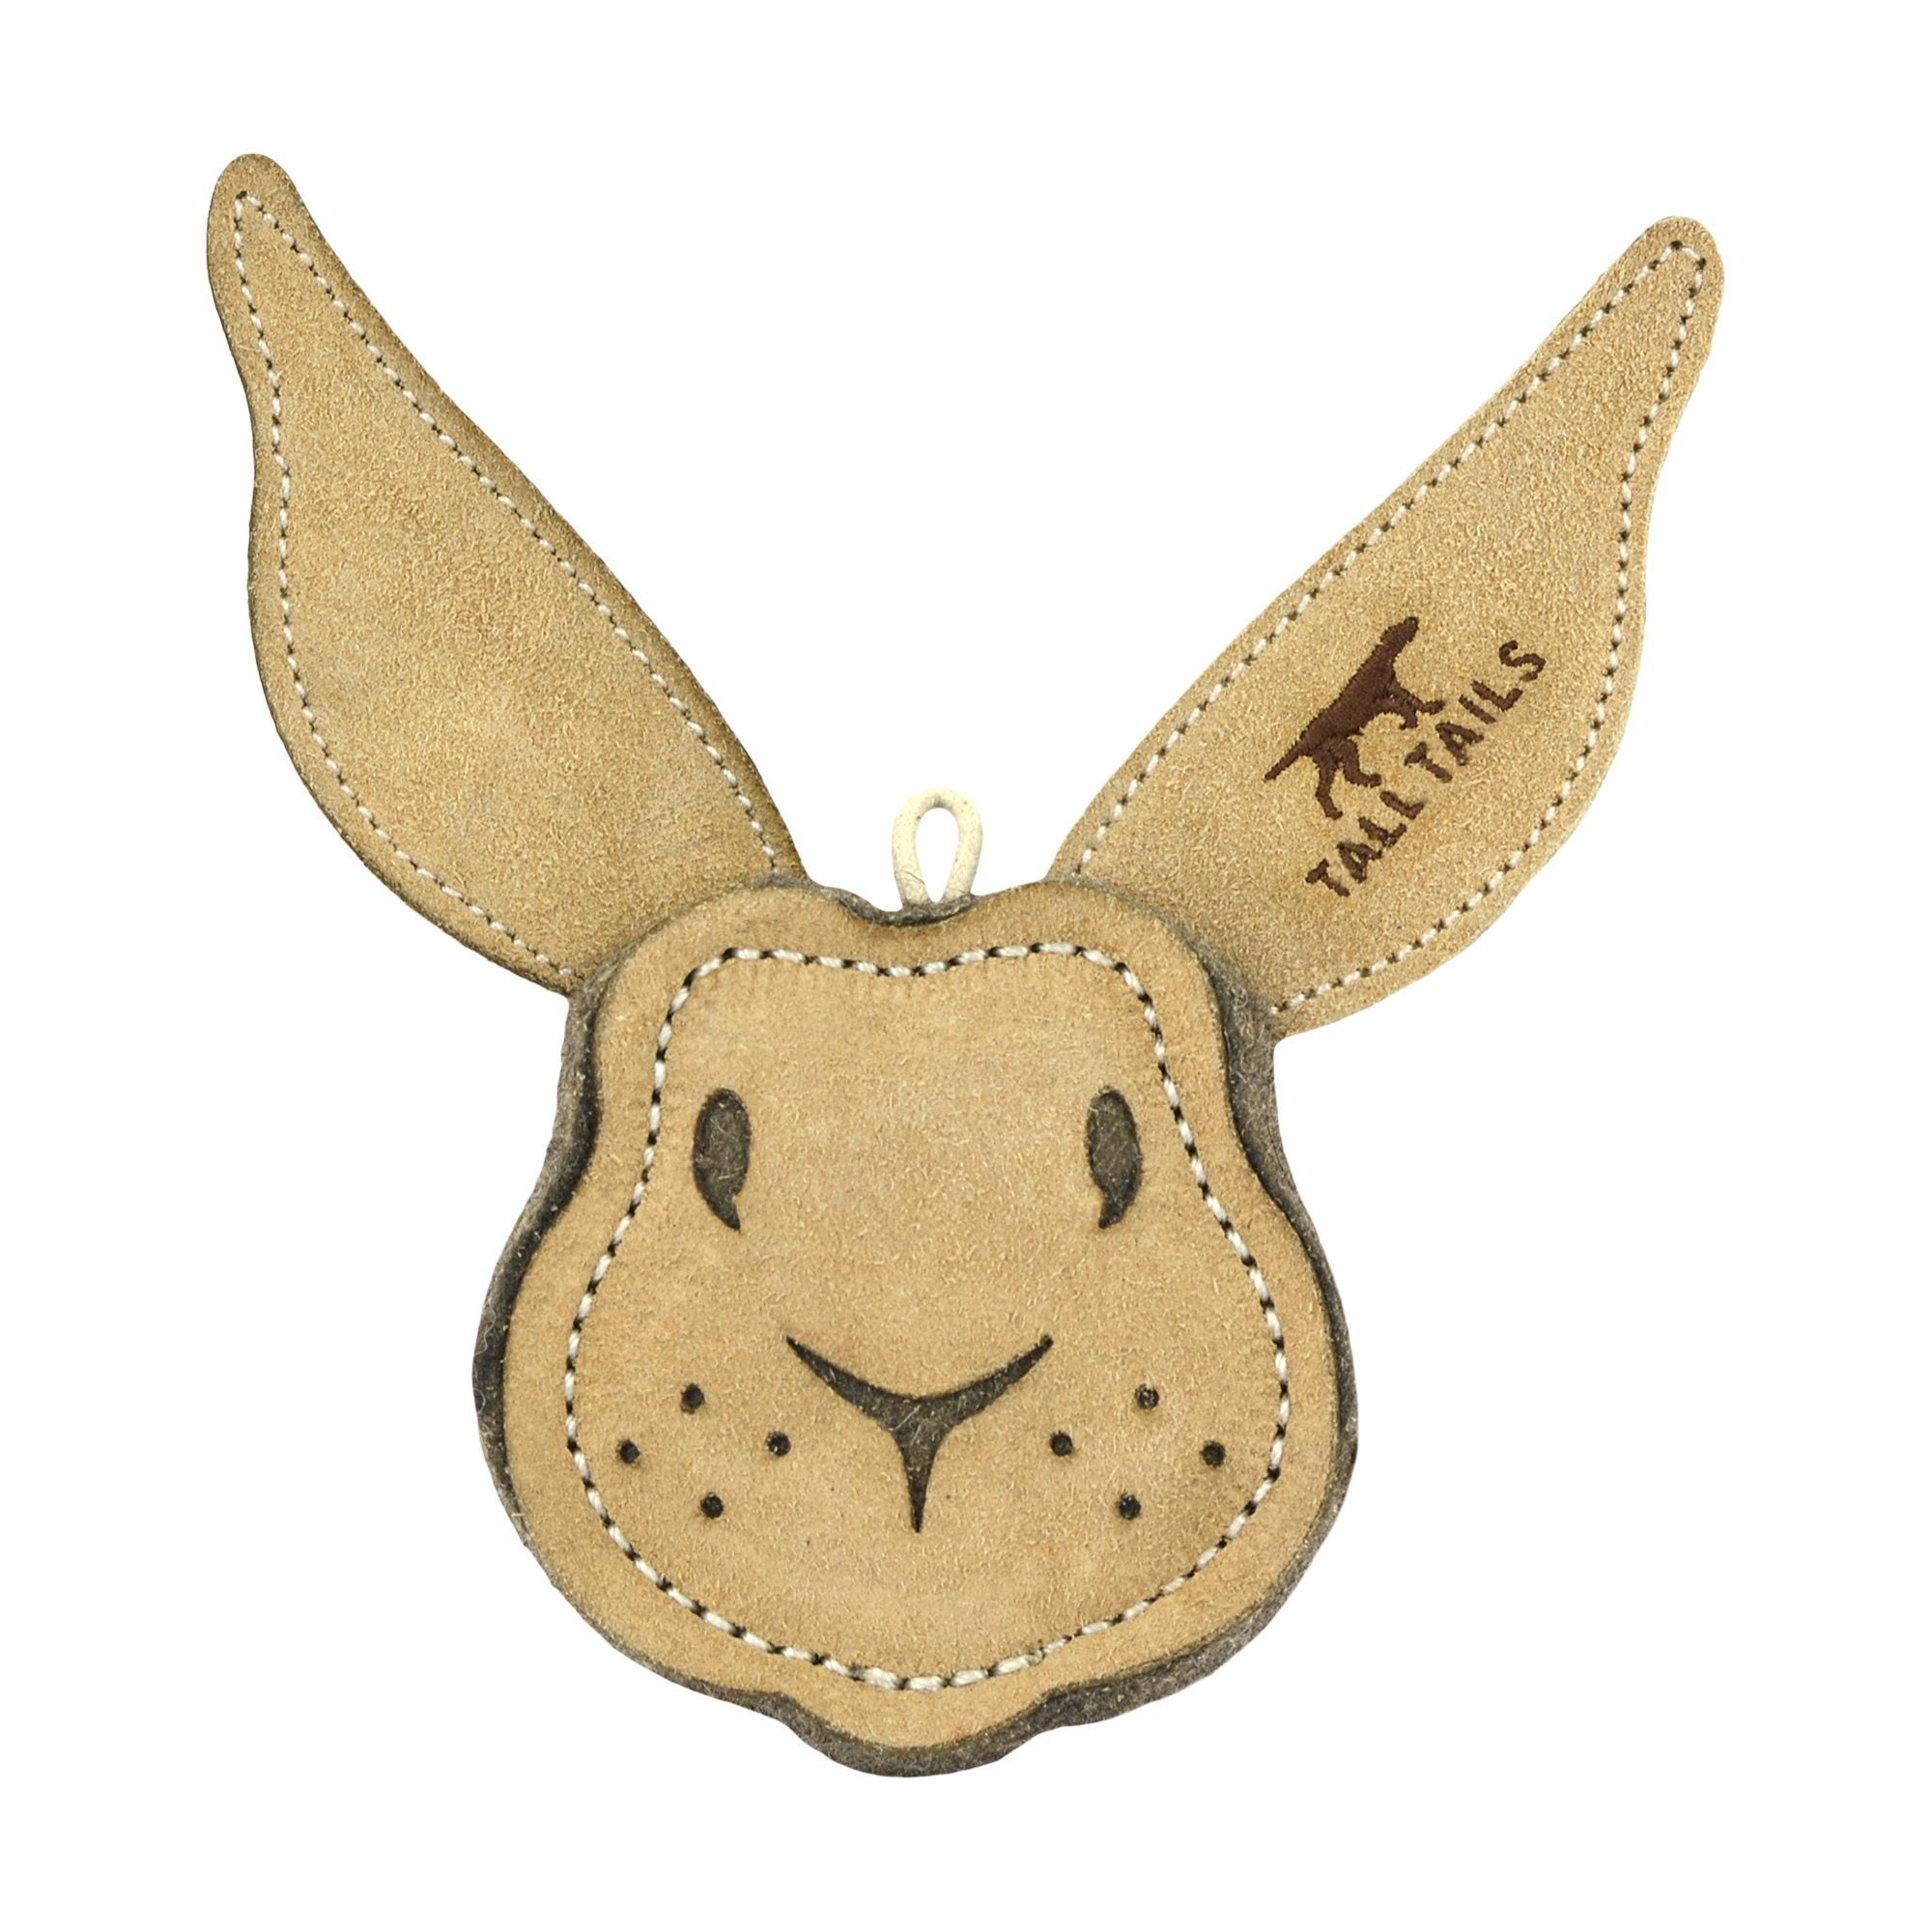 Tall Tails Natural Leather Rabbit Dog Toy, 4-in (Size: 4-in) Image